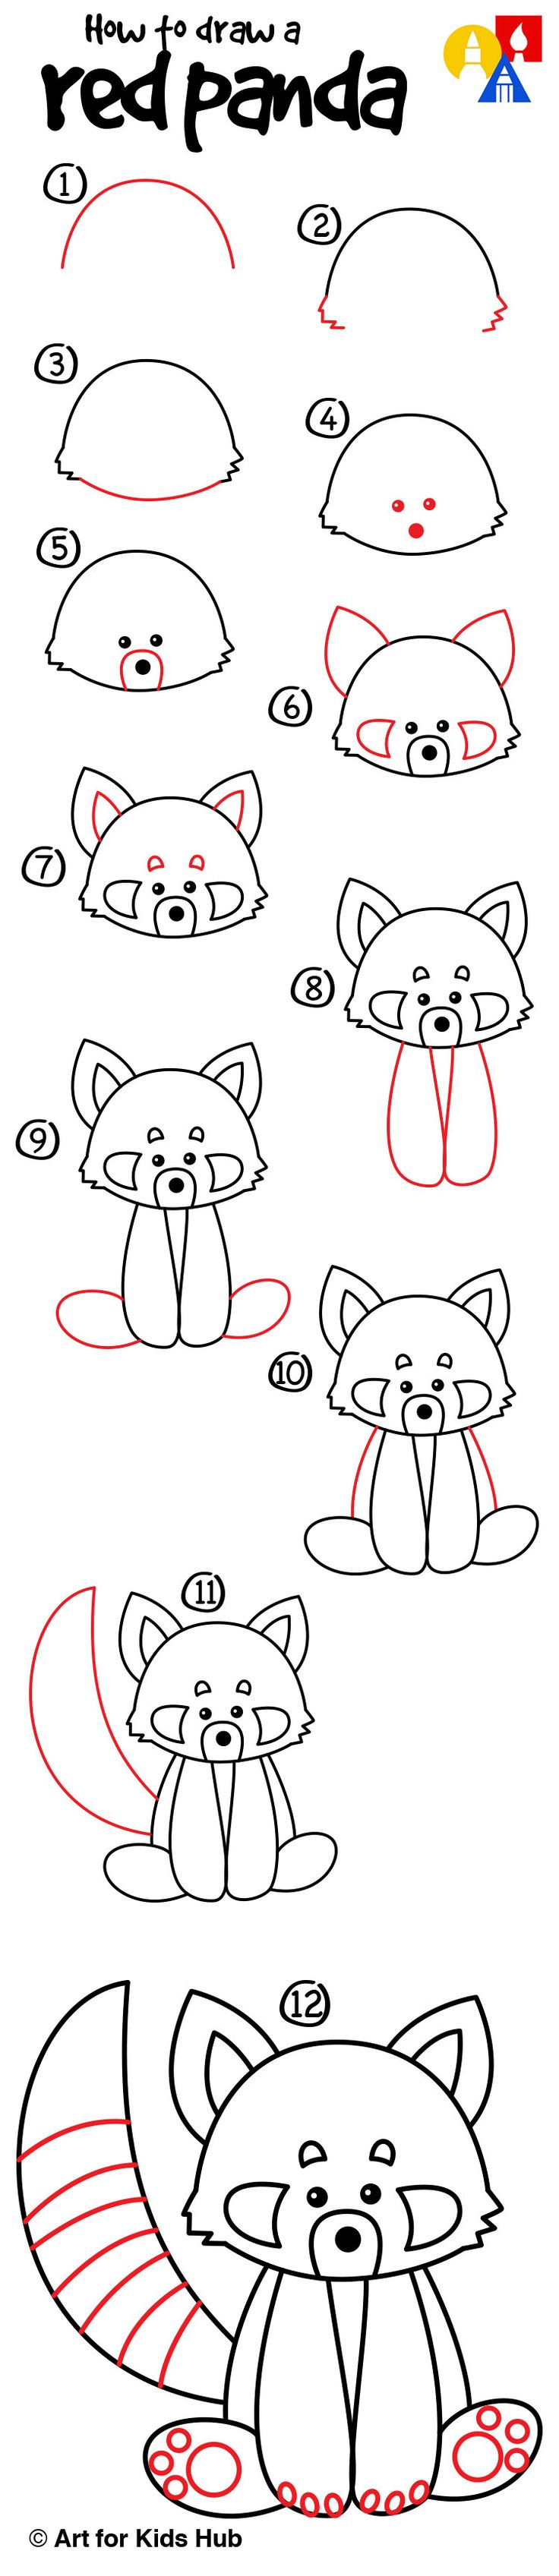 Drawn red panda easy Kids Pinterest on To For